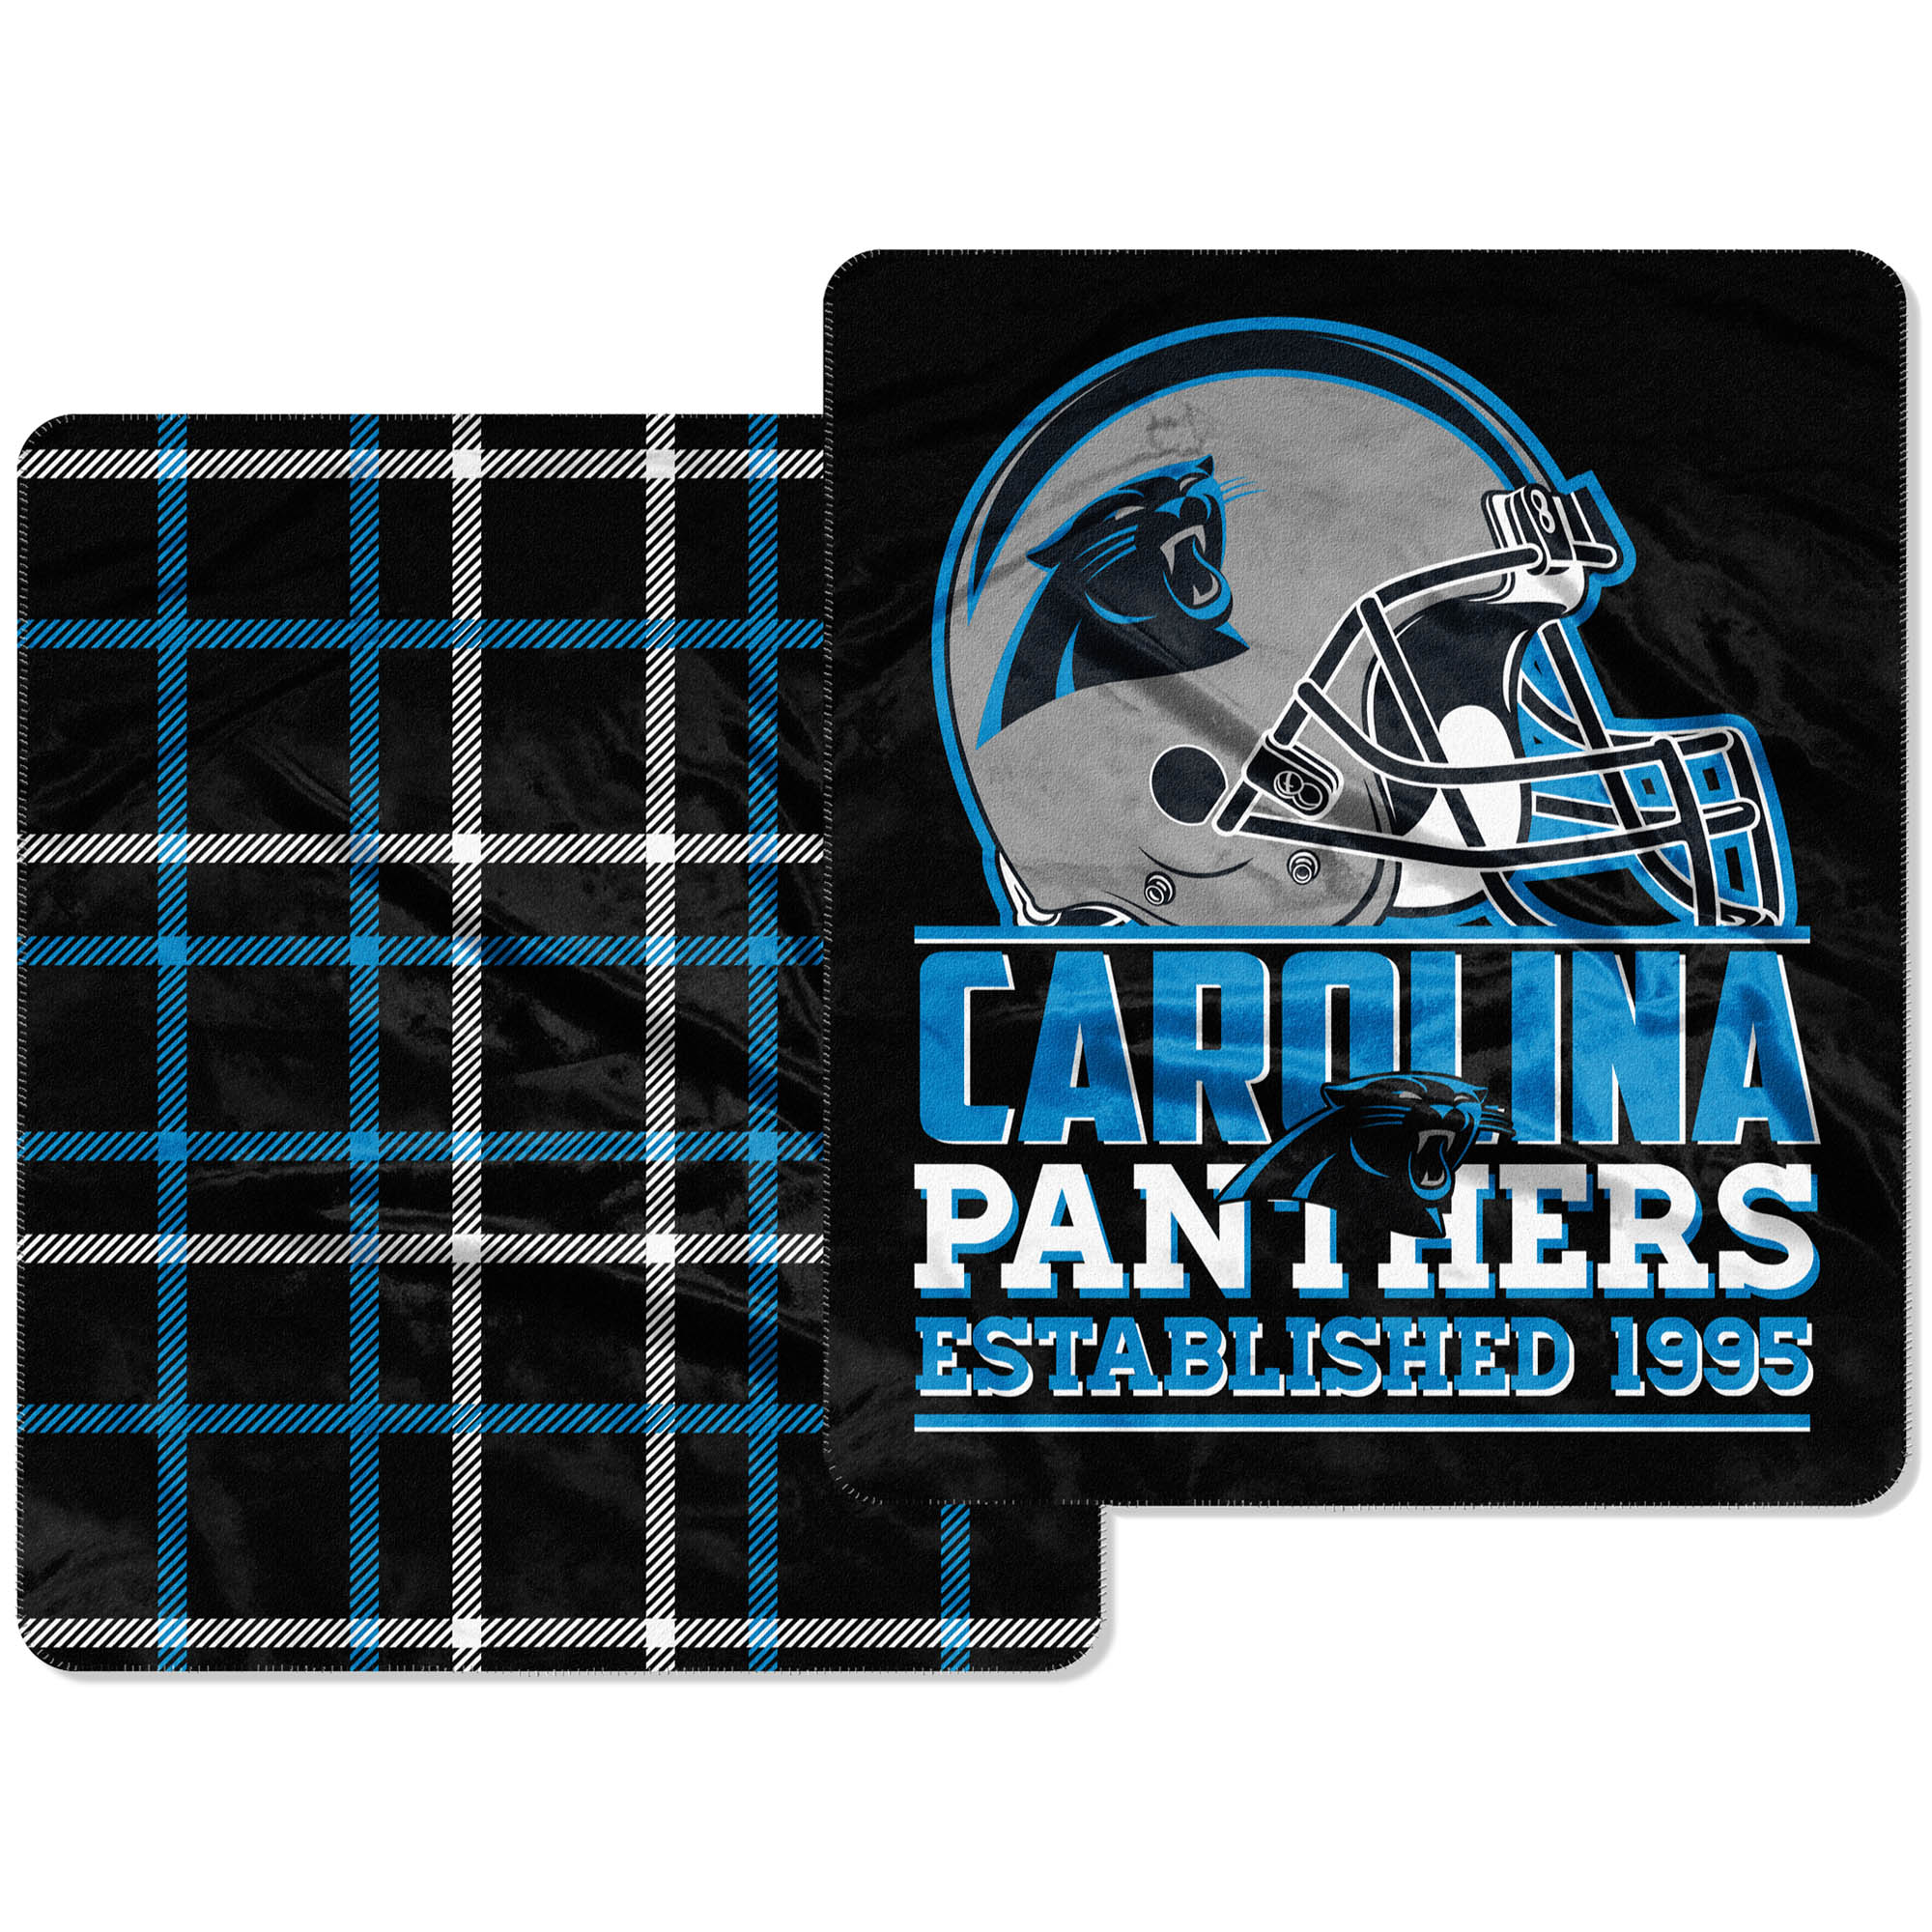 Carolina Panthers The Northwest Company Home Field Cloud 60'' x 70'' Double-Sided Plush Throw Blanket